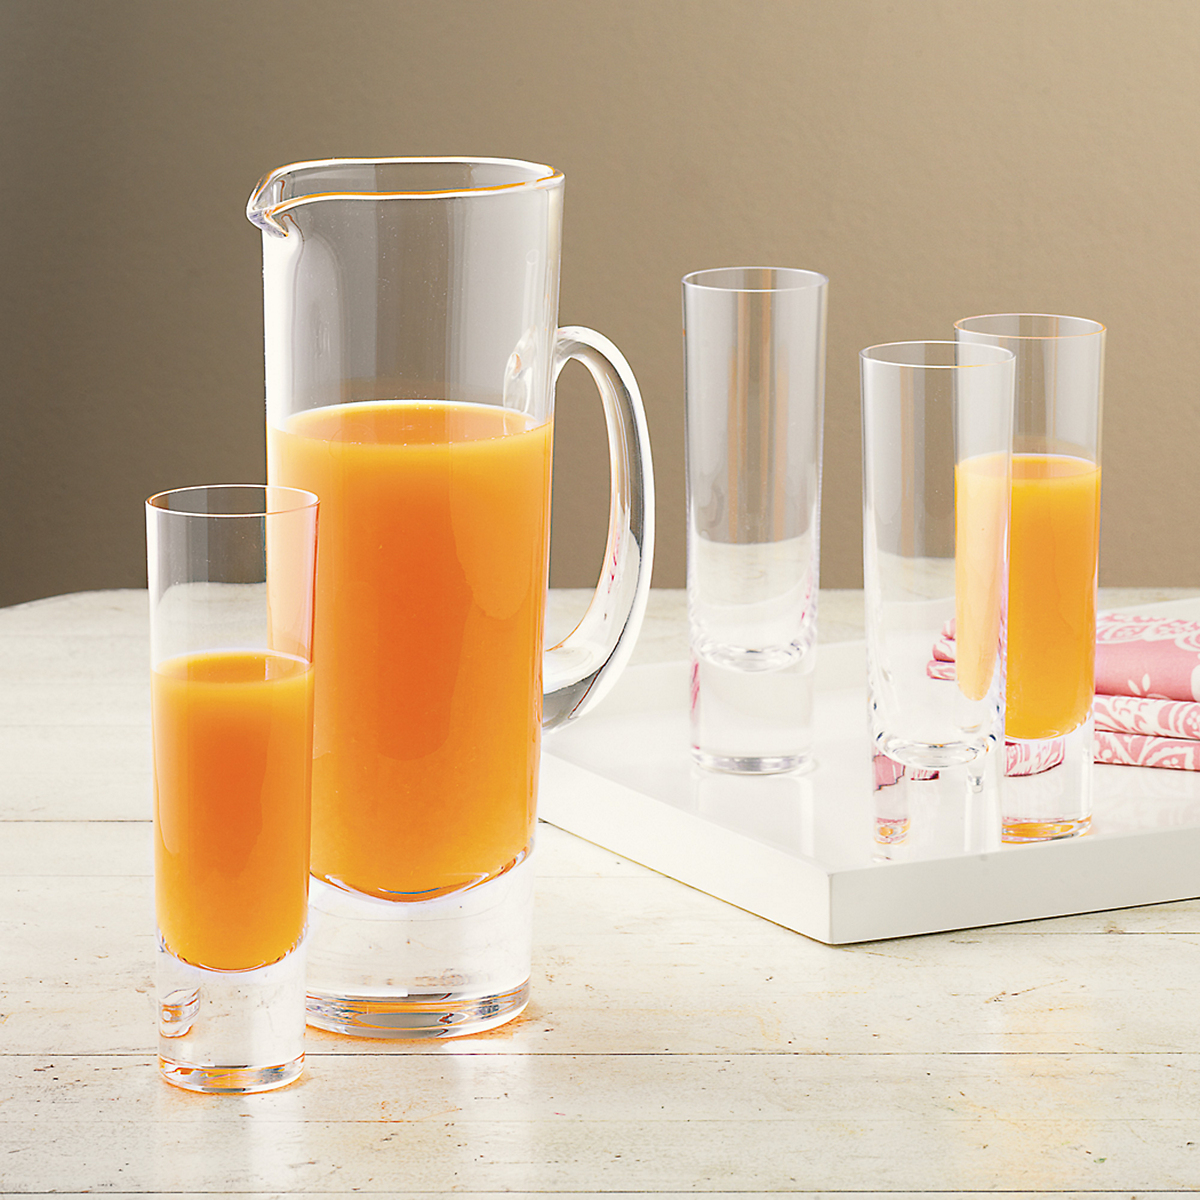 Sleek Brunch Glasses & Pitcher